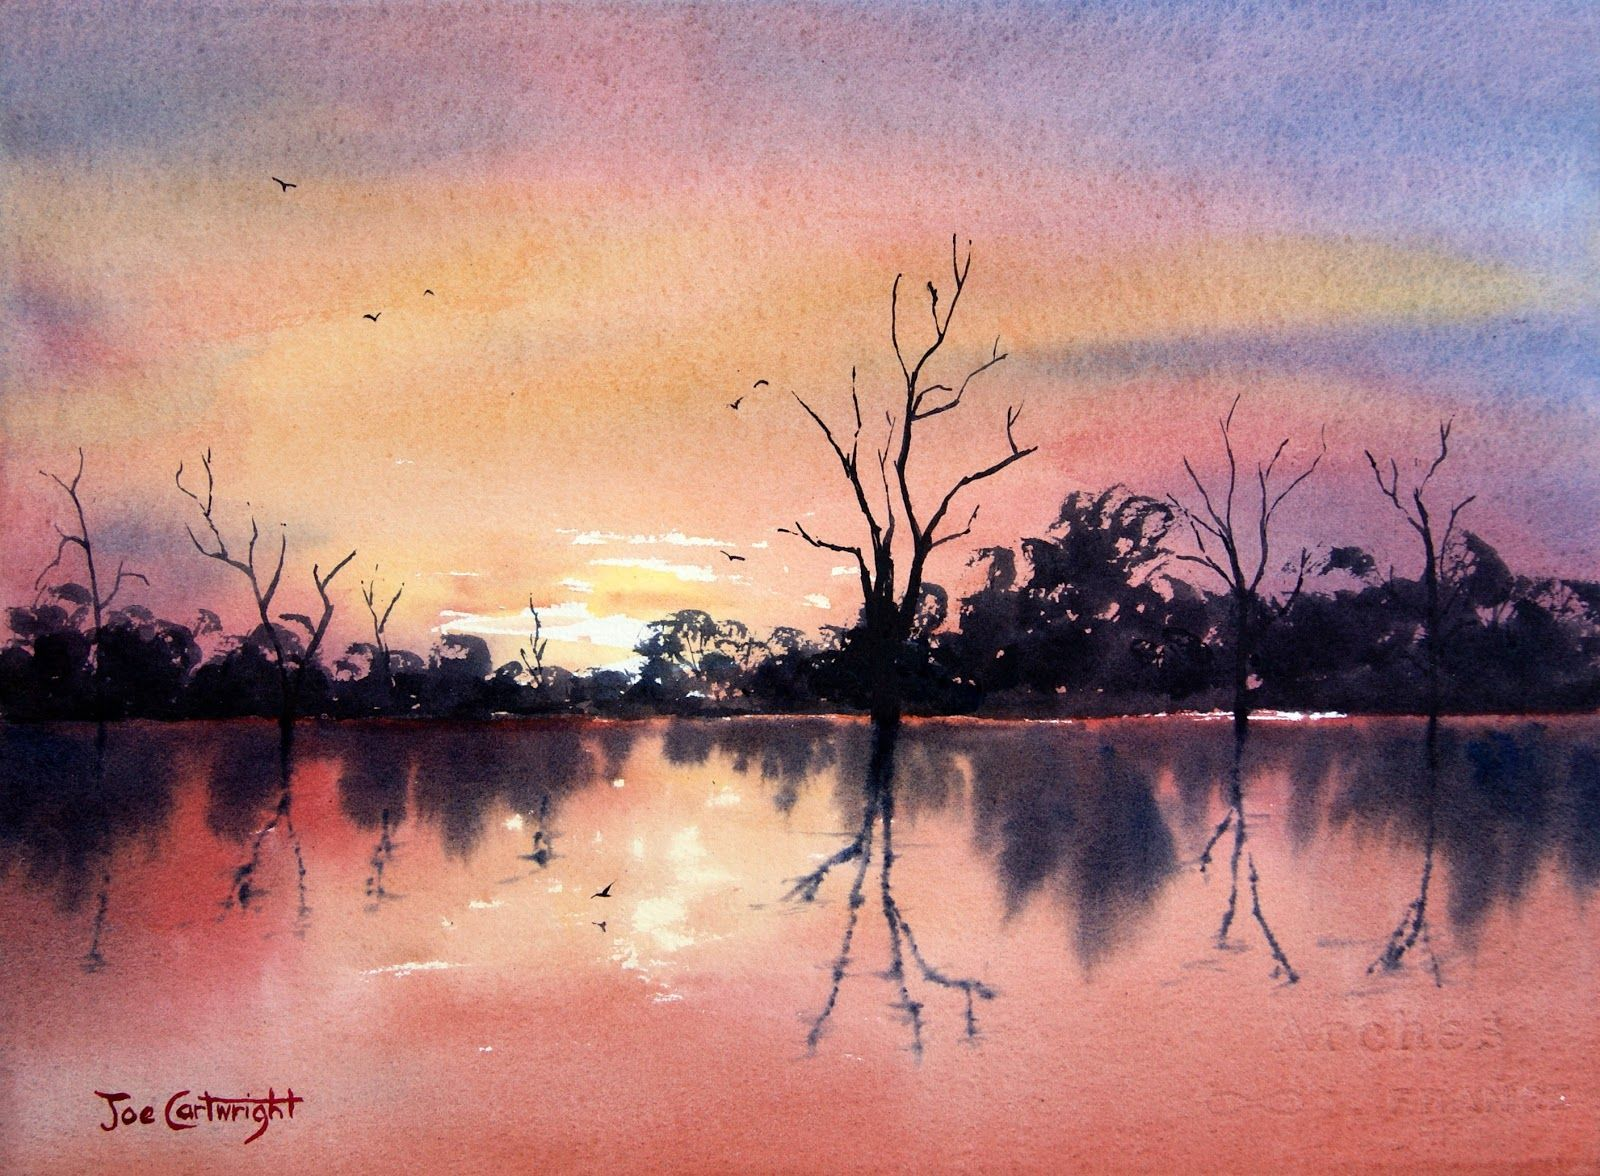 Easy Watercolor Paintings | Watercolor painting of Sunset on Lake Bonney by Joe Cartwright #easywatercolorpaintings